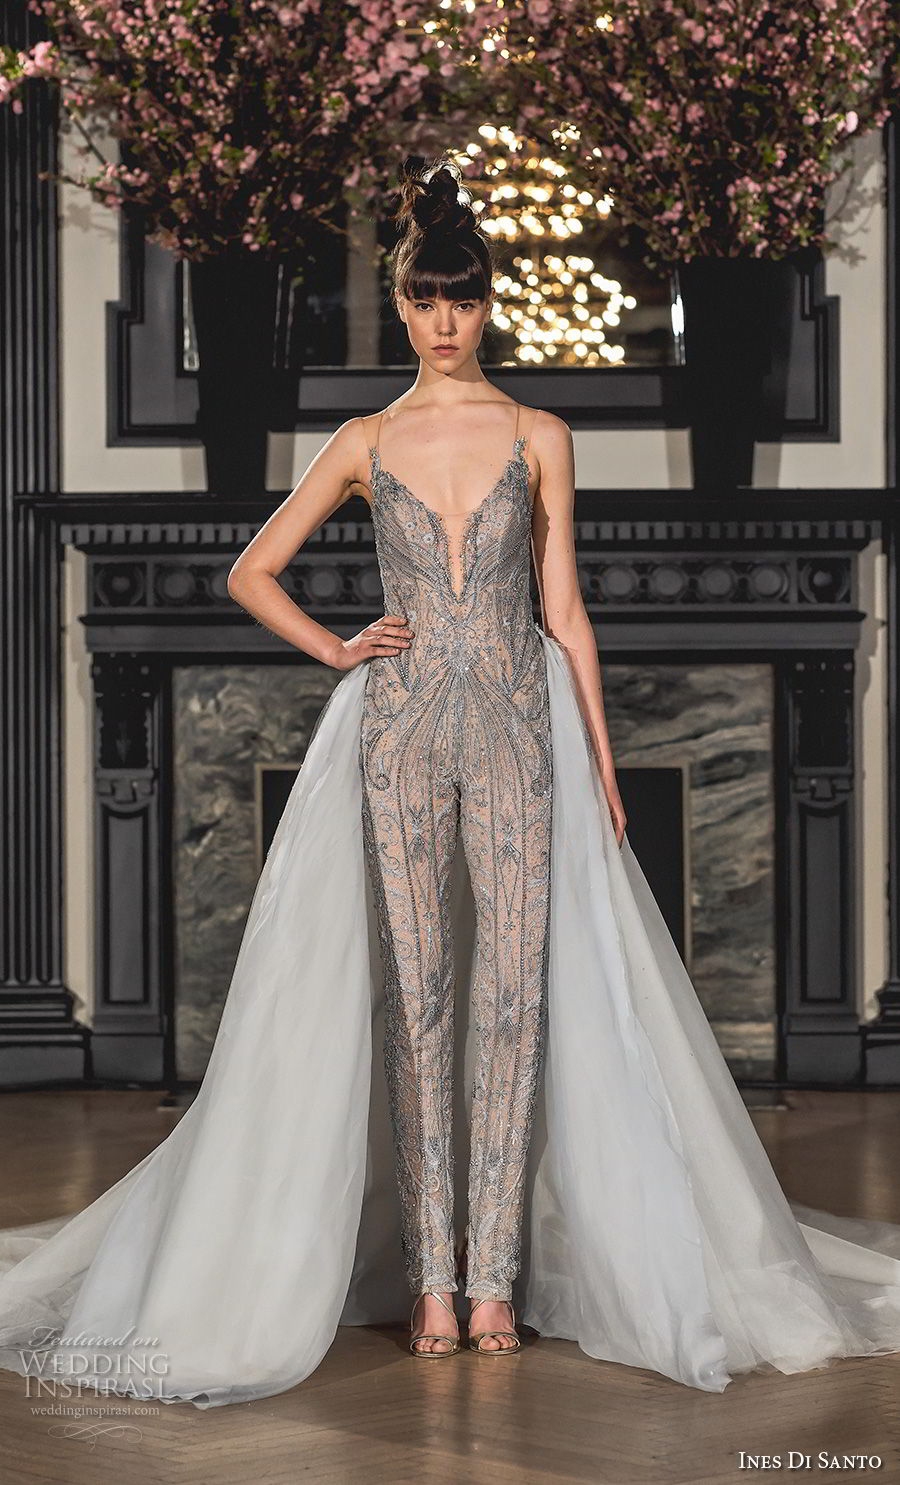 ines di santo spring 2019 bridal sheer strap deep plunging sweetheart neckline full embellishment gray pants jumpsuit wedding dress a line overskirt chapel train (17) mv